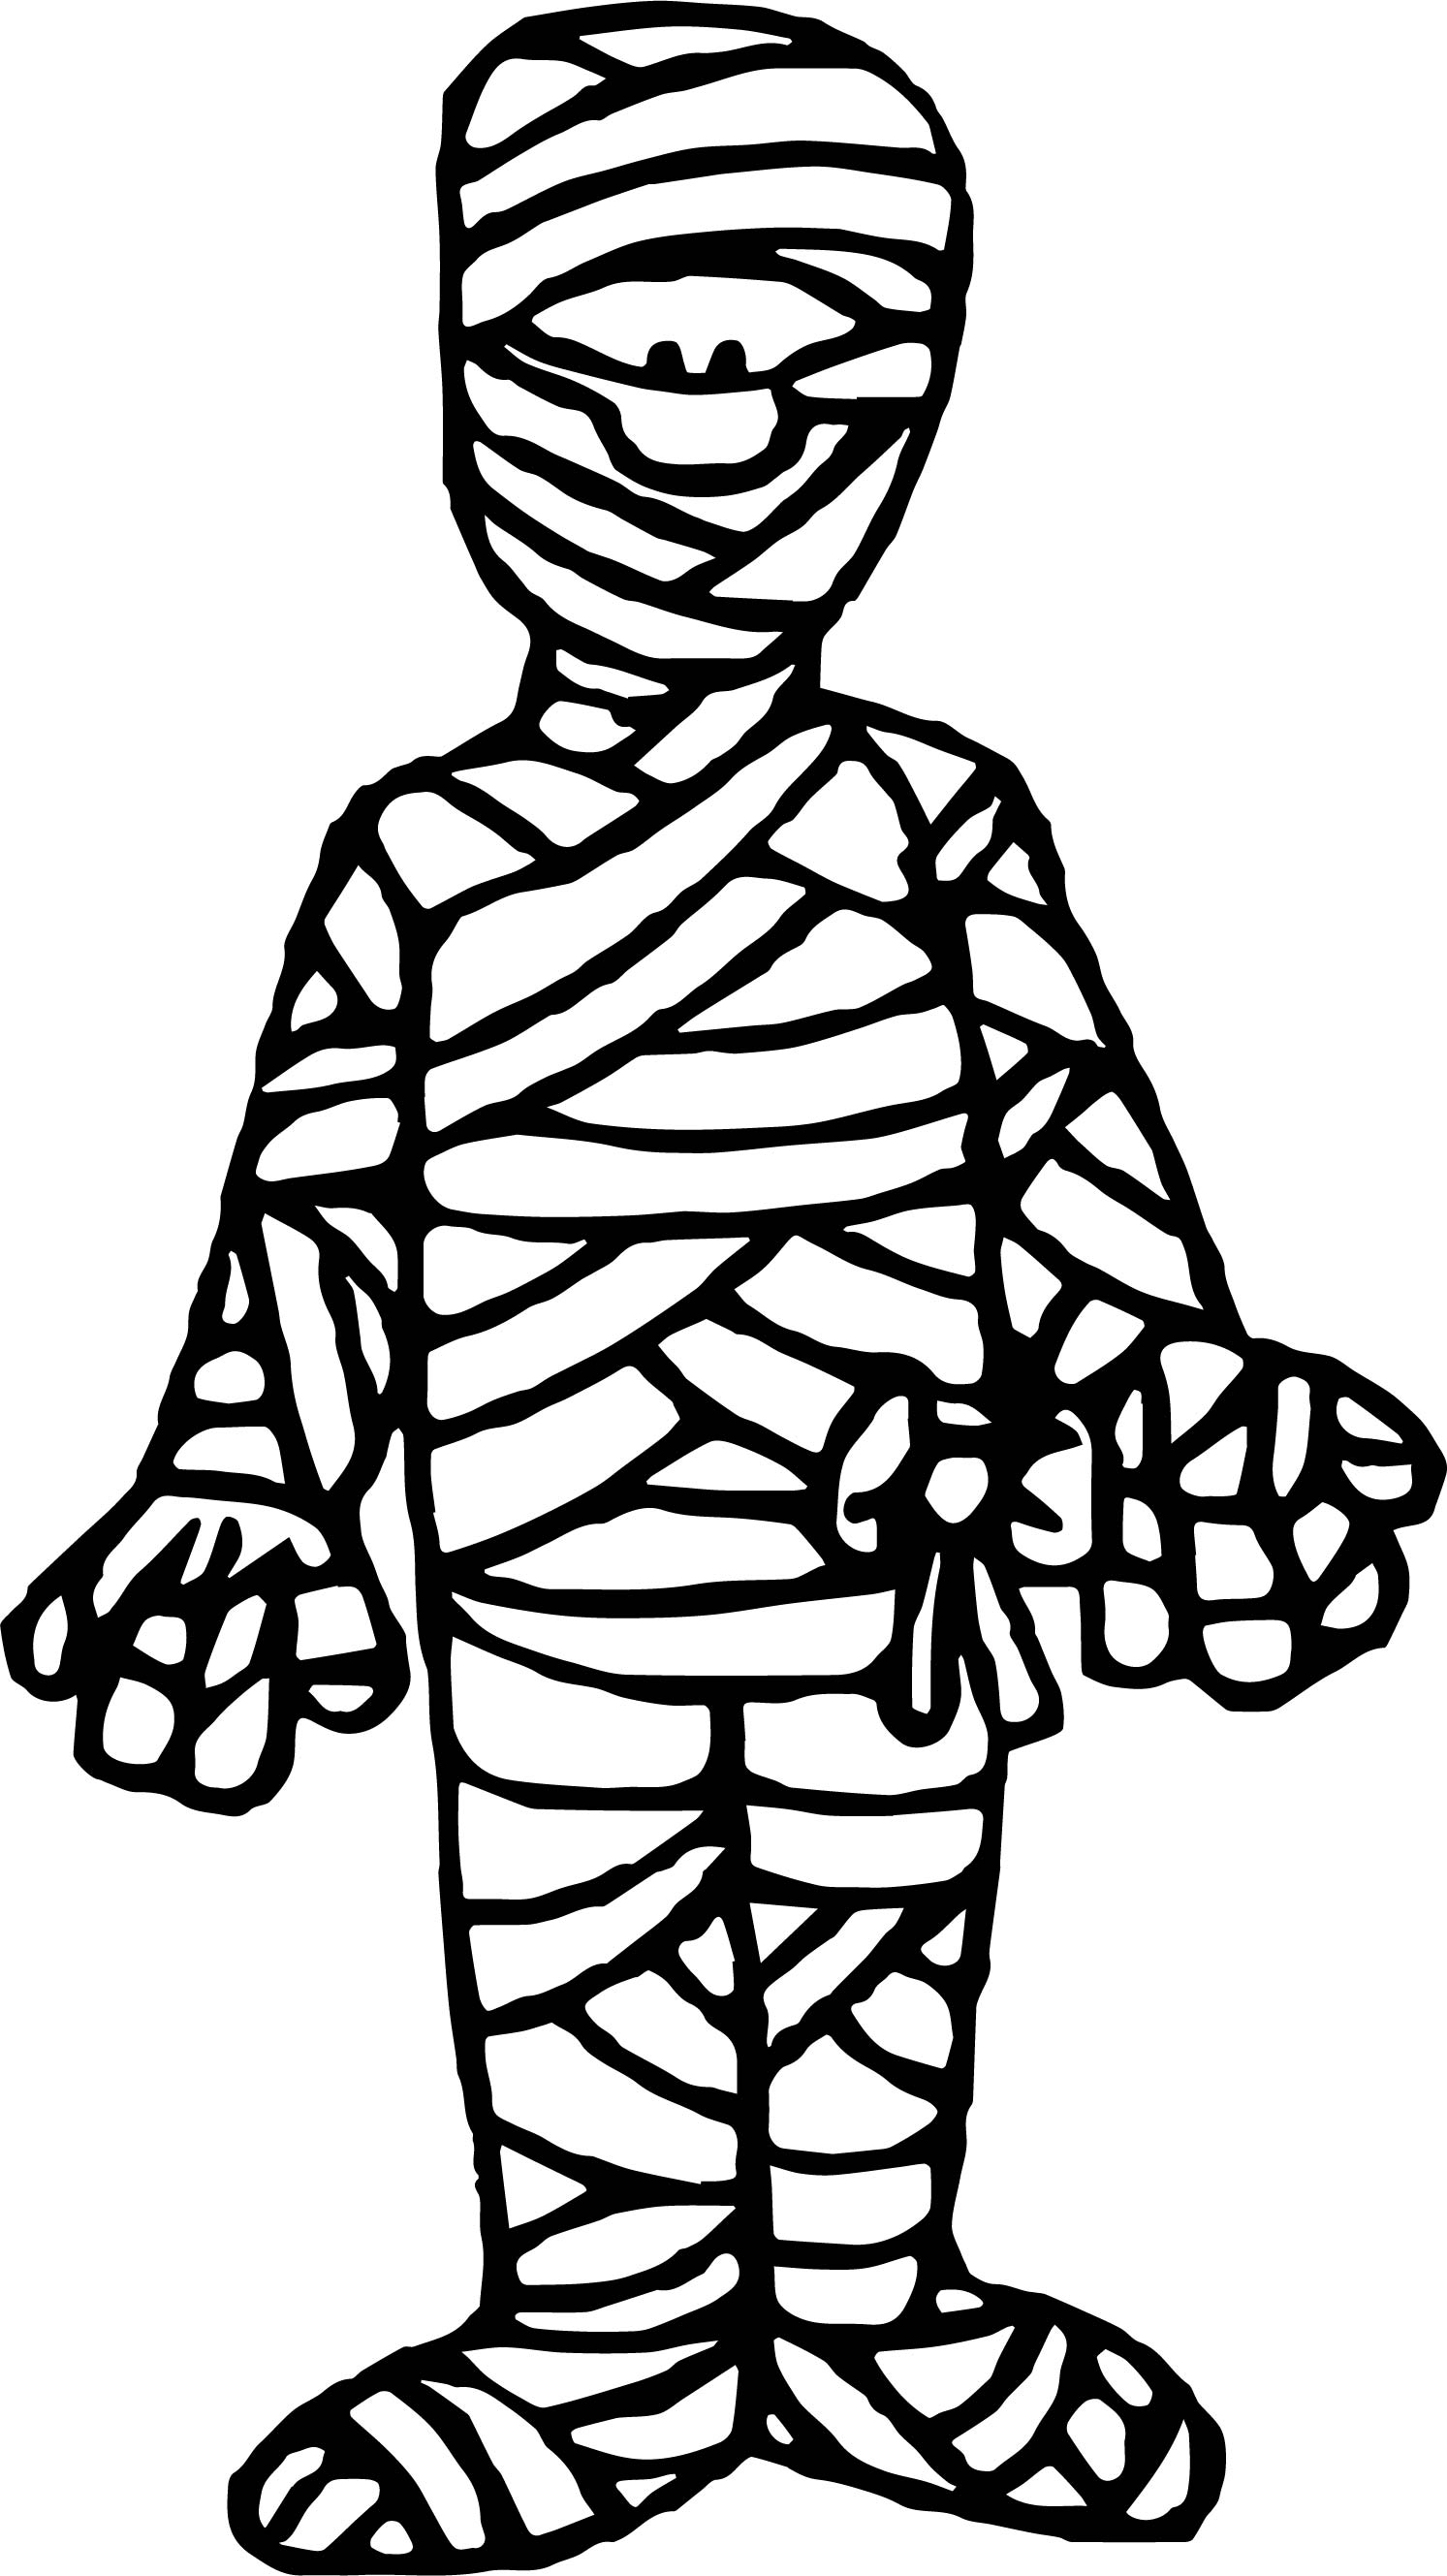 ancient egypt mummy coloring page - Ancient Egypt Mummy Coloring Pages